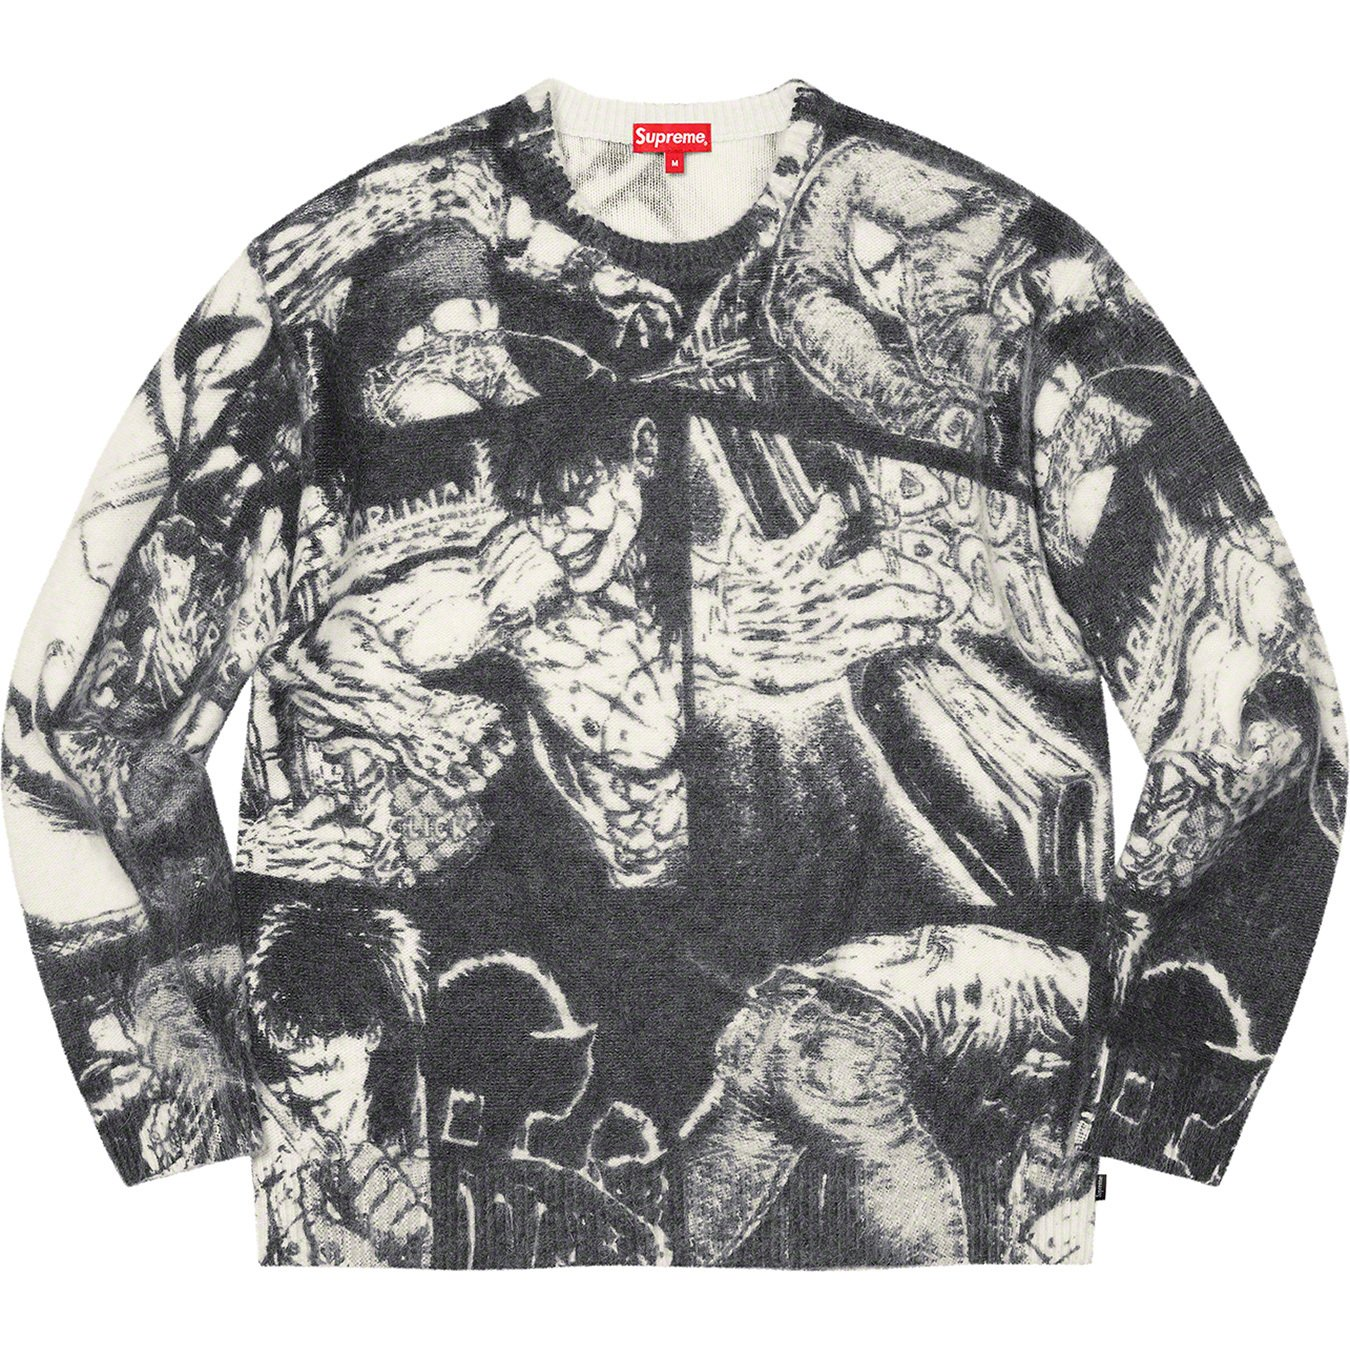 supreme-the-crow-21aw-21fw-collaboration-release-20210918-week4-sweater